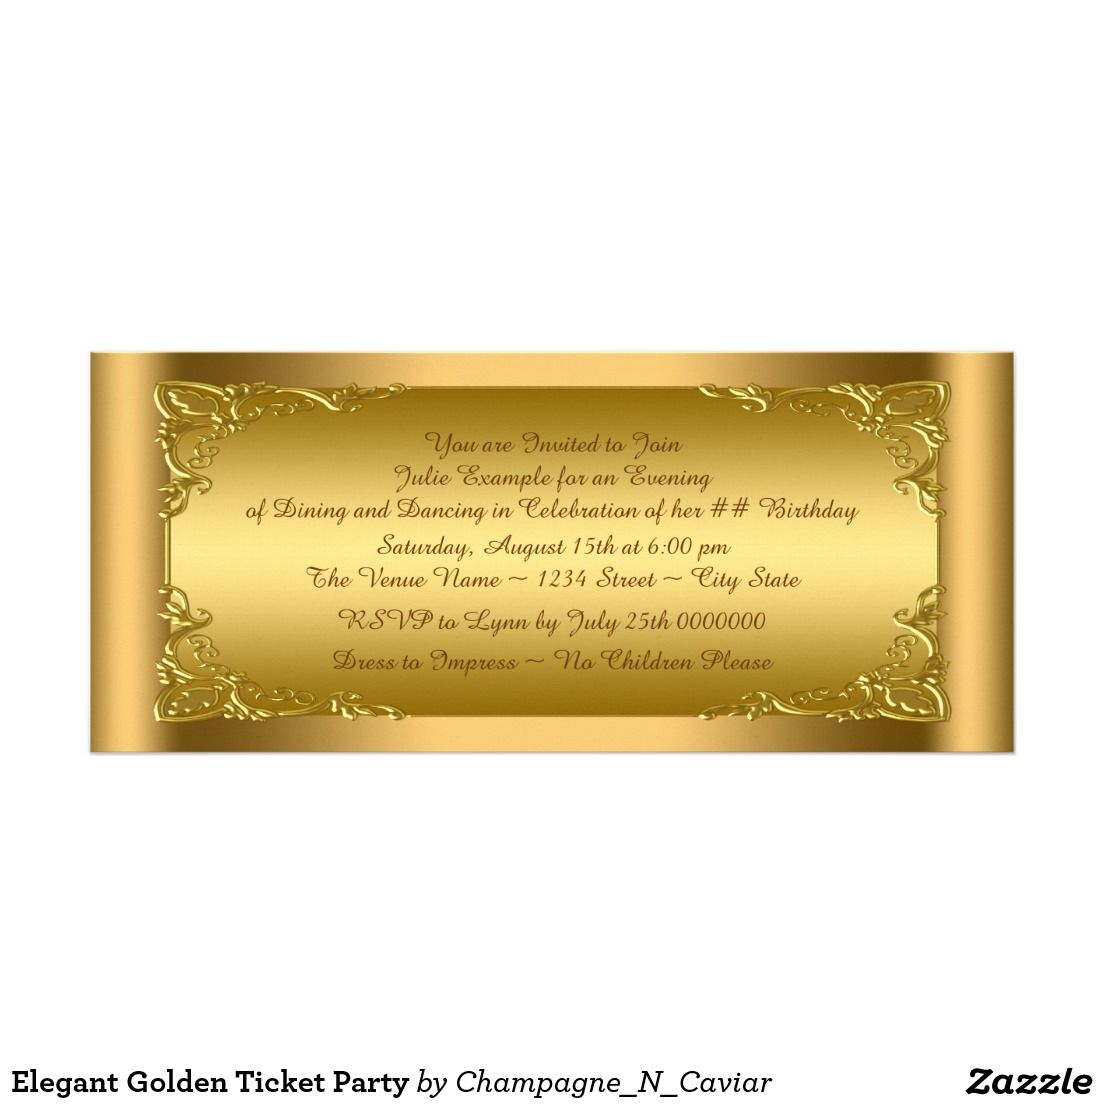 Elegant Golden Ticket Party Card | Golden ticket, Birthday party ...